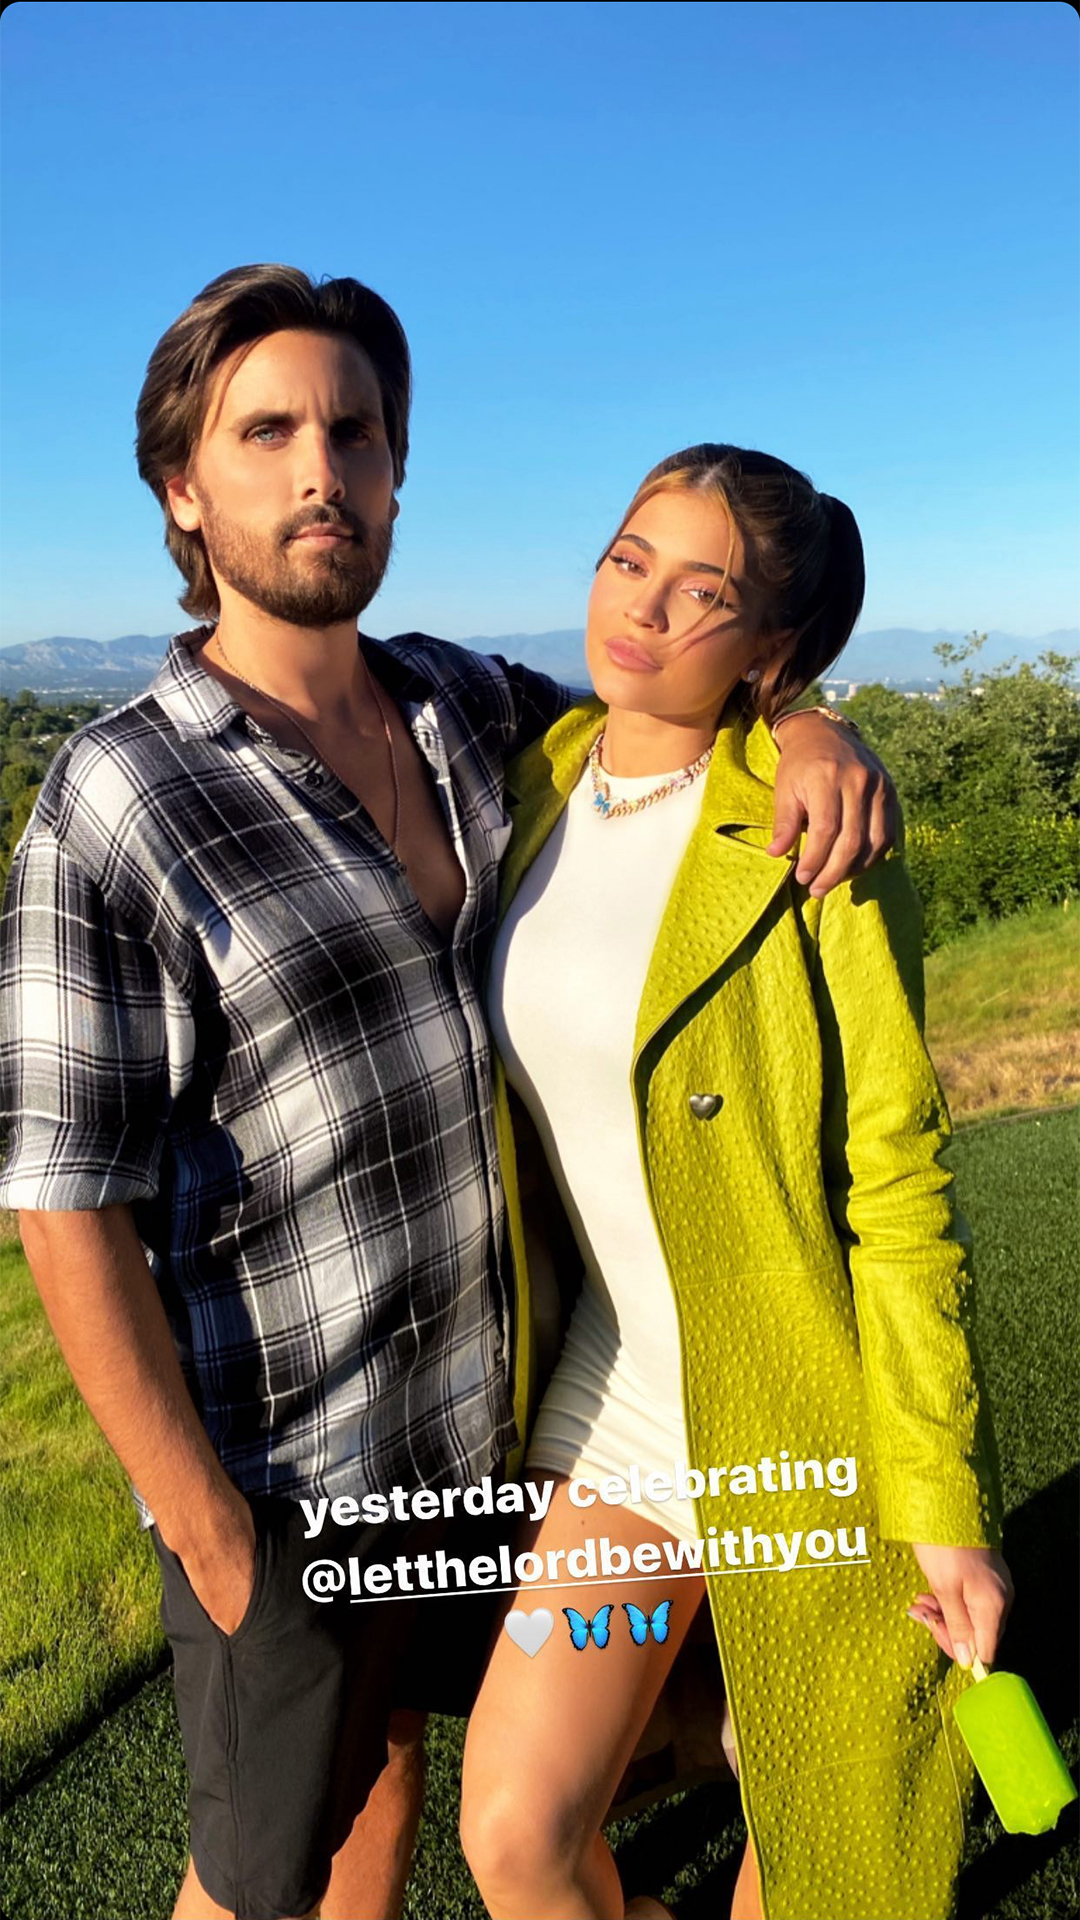 Scot Disick and Kylie jenner